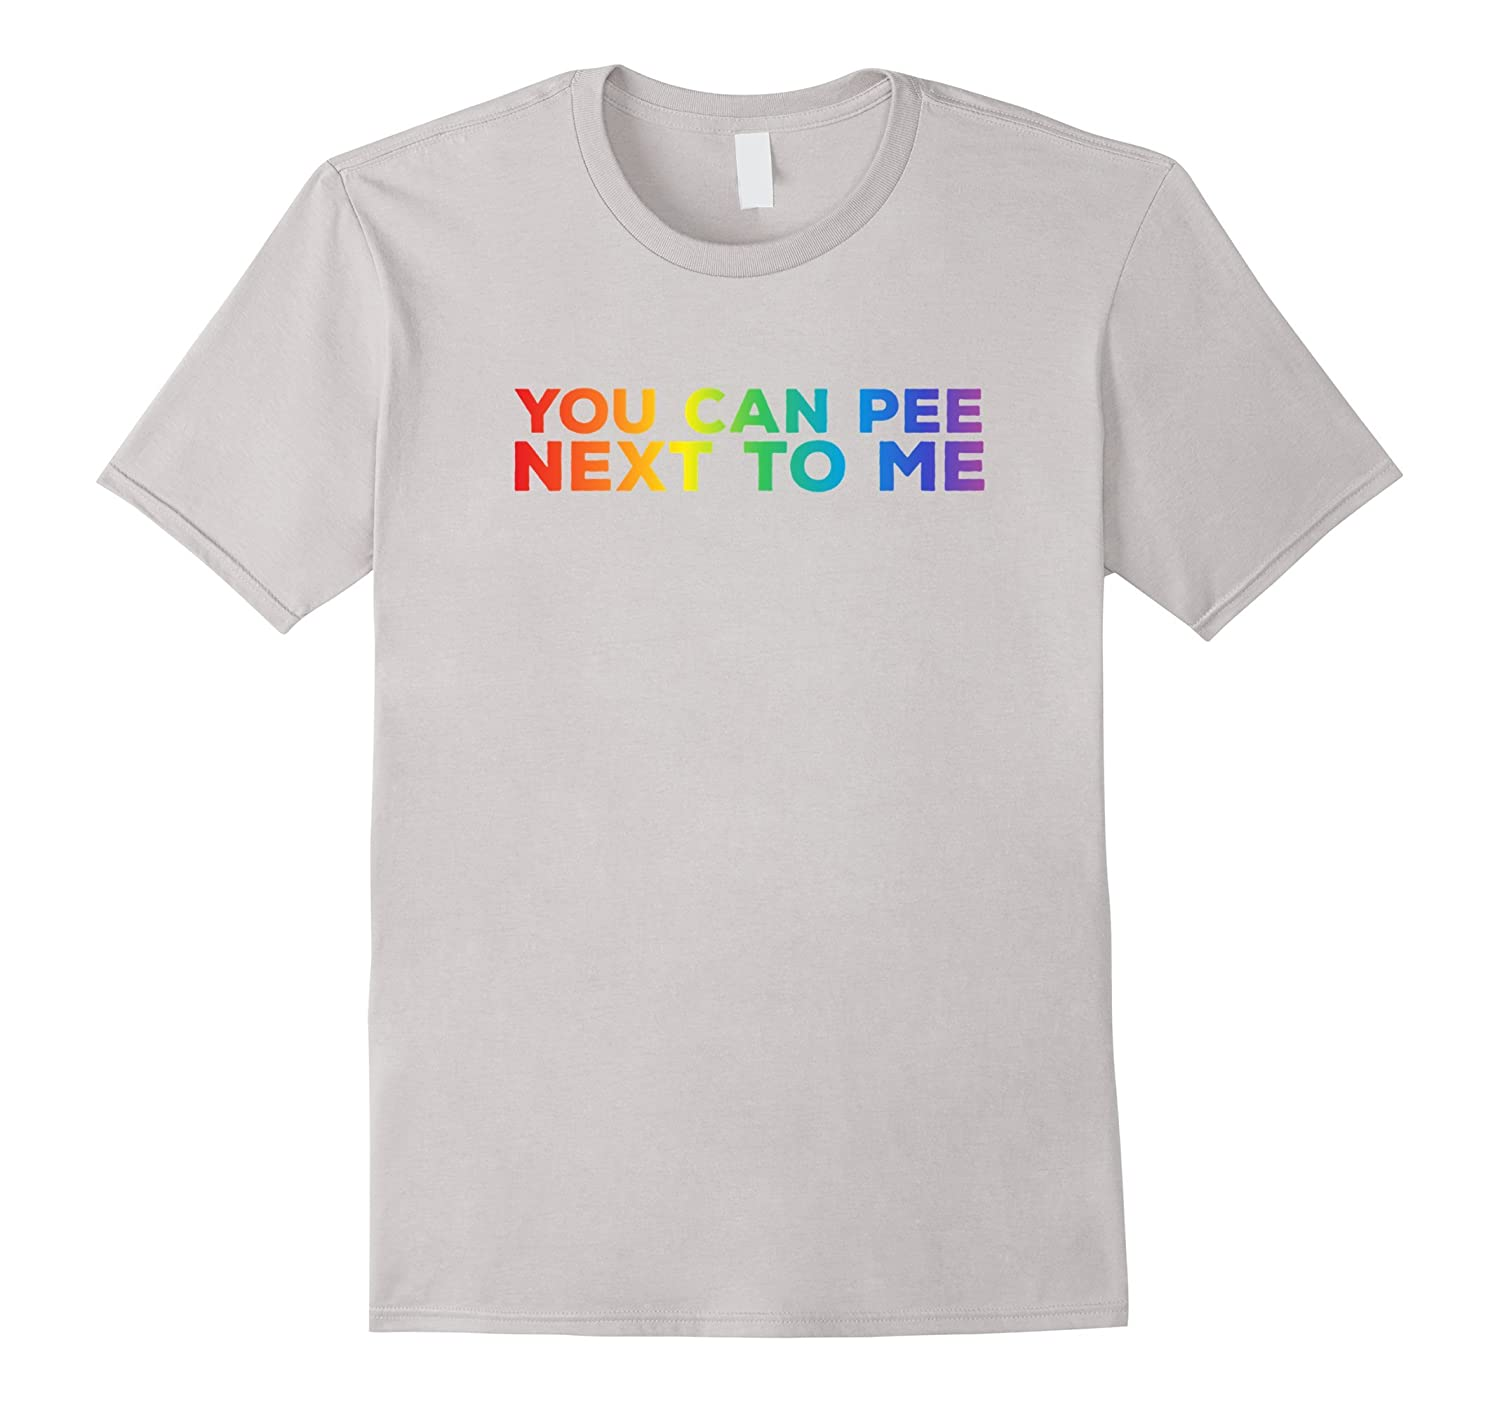 Humerous LGBT You can pee next to me t-shirt